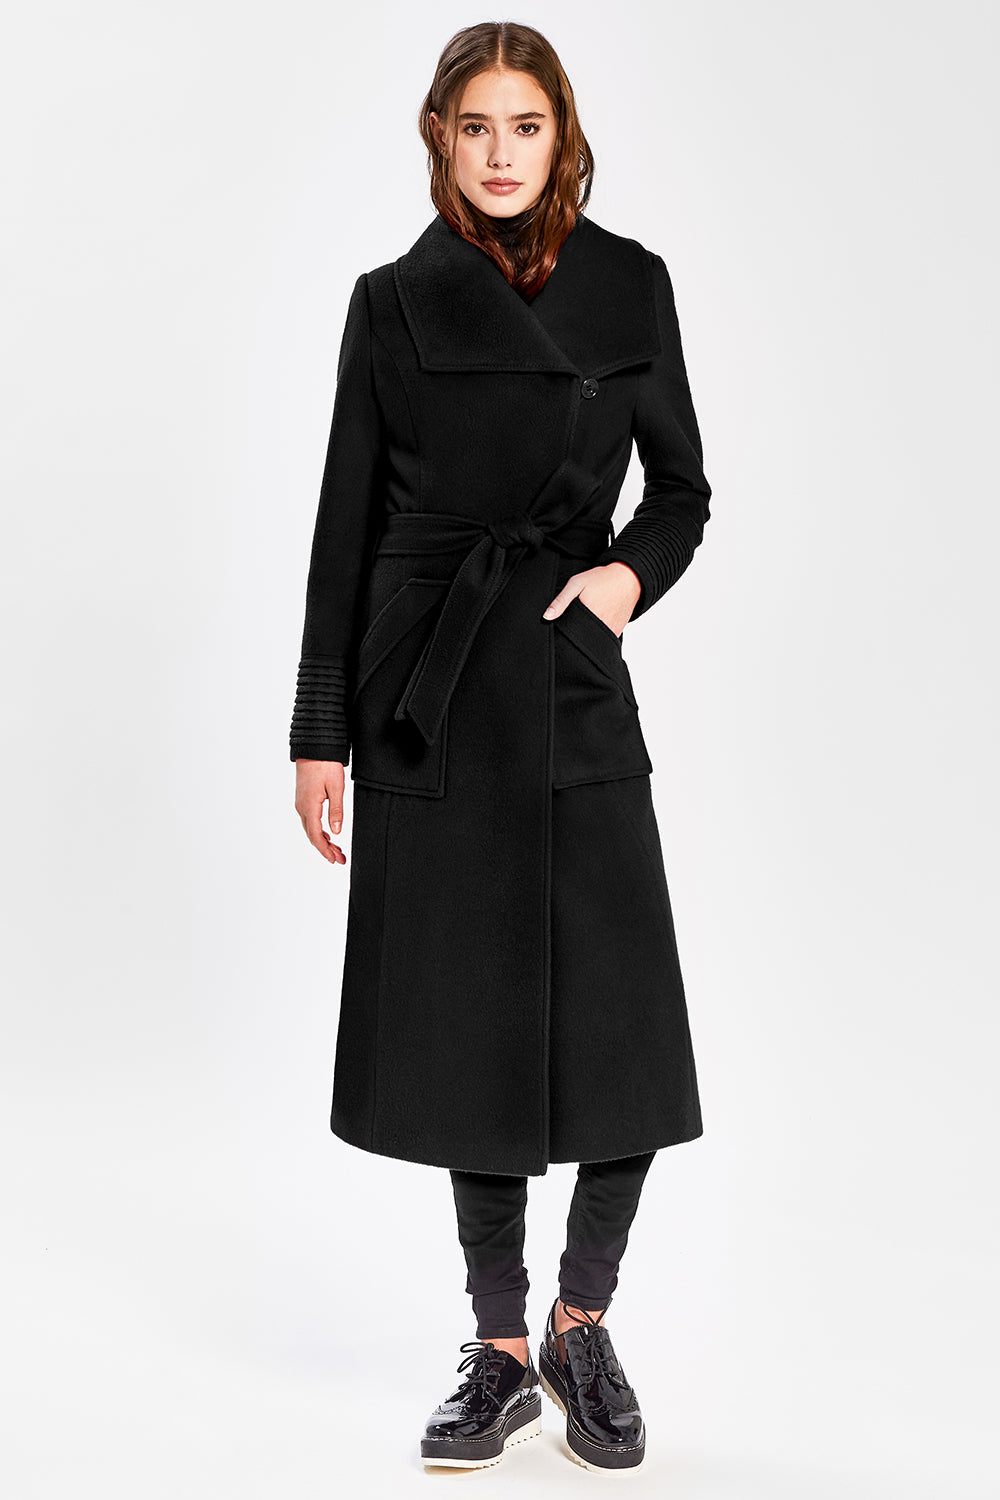 Sentaler Long Wide Collar Wrap Coat featured in Baby Alpaca and available in Black. Seen from front.